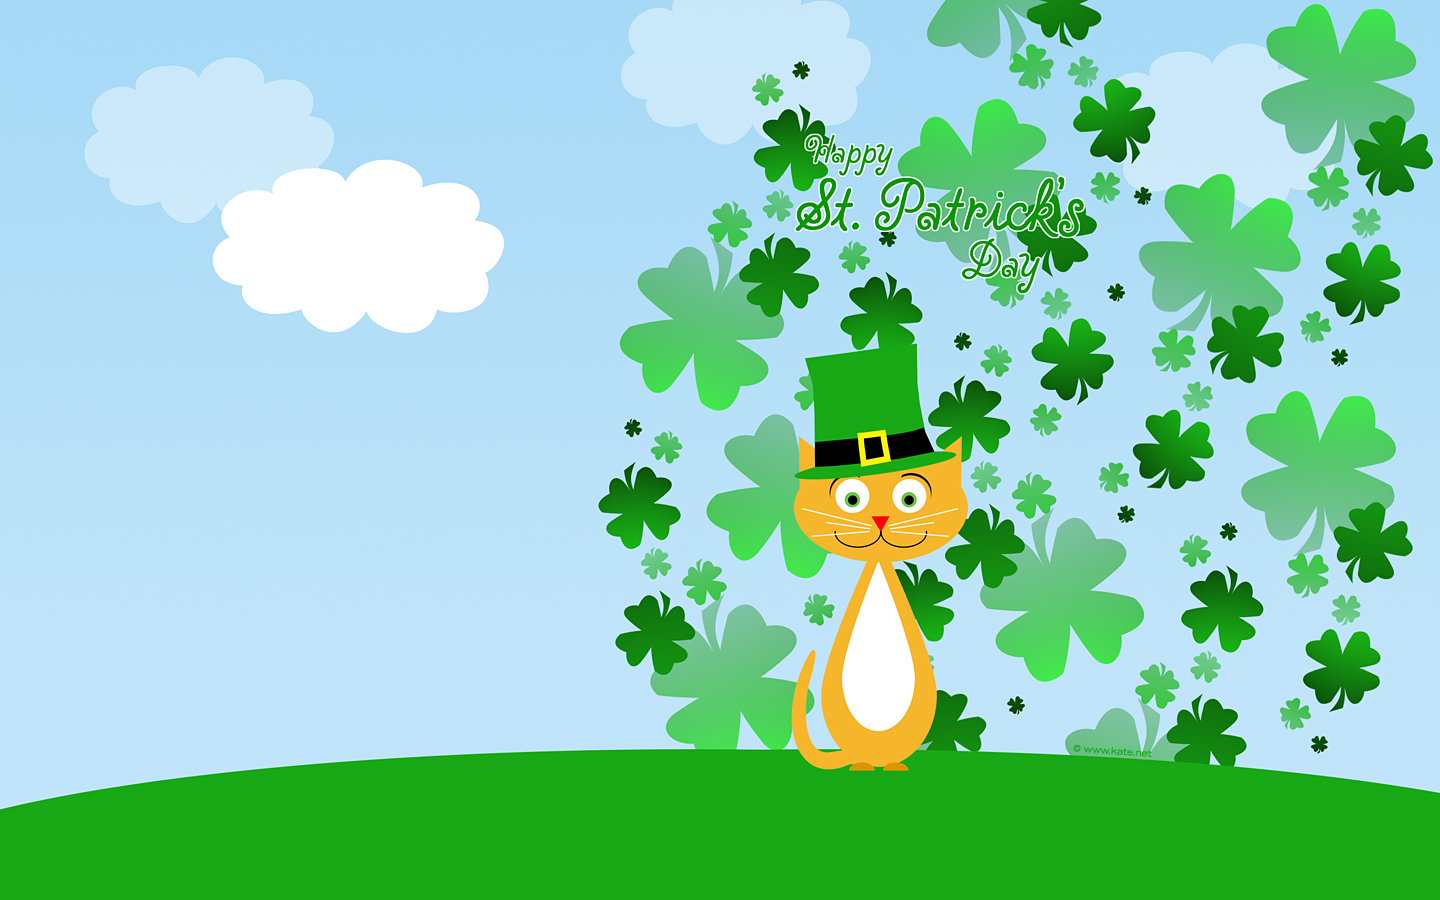 36] St Patricks Day Cat Wallpaper on WallpaperSafari 1440x900